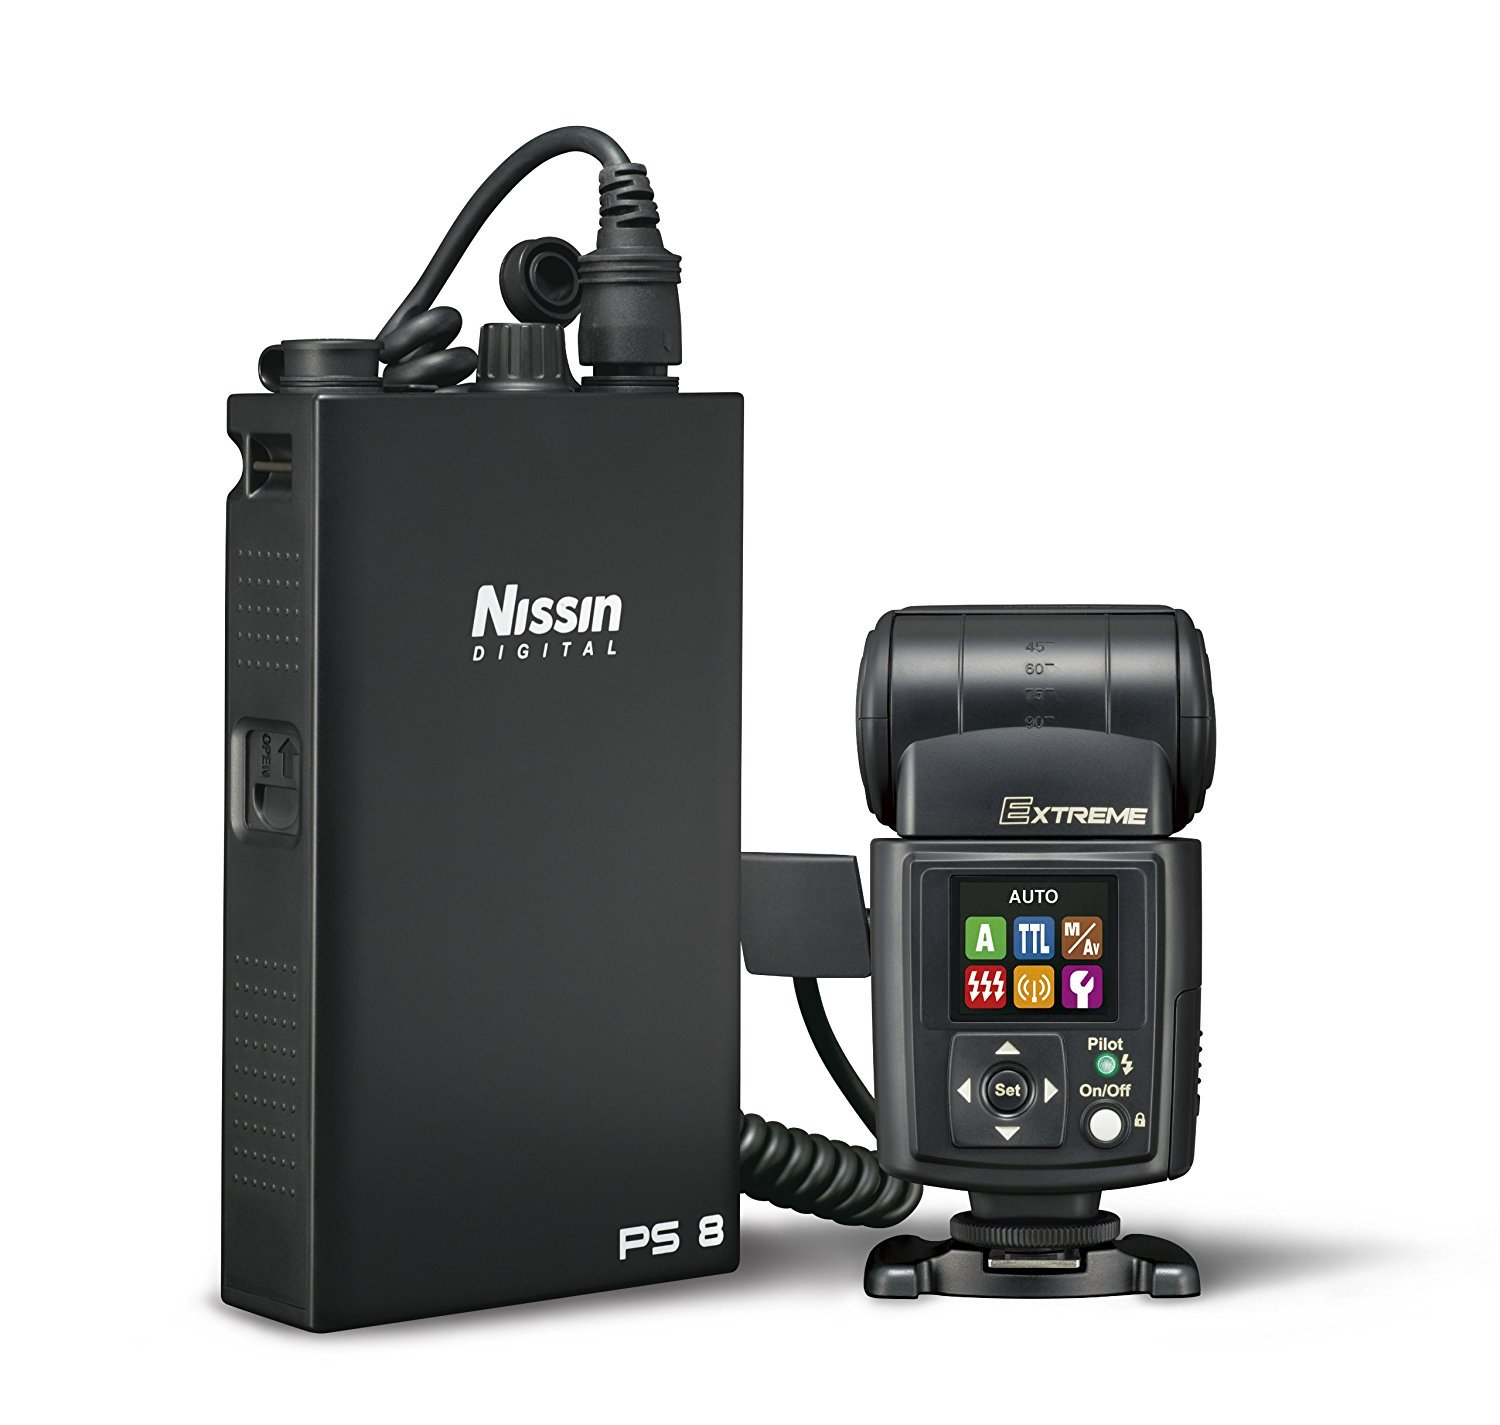 Nissin i60A Air Flash, Wireless 2.4GHz Nissin Air System Receiver For Canon - Includes Nissin USA 2 Year Warranty by Nissin